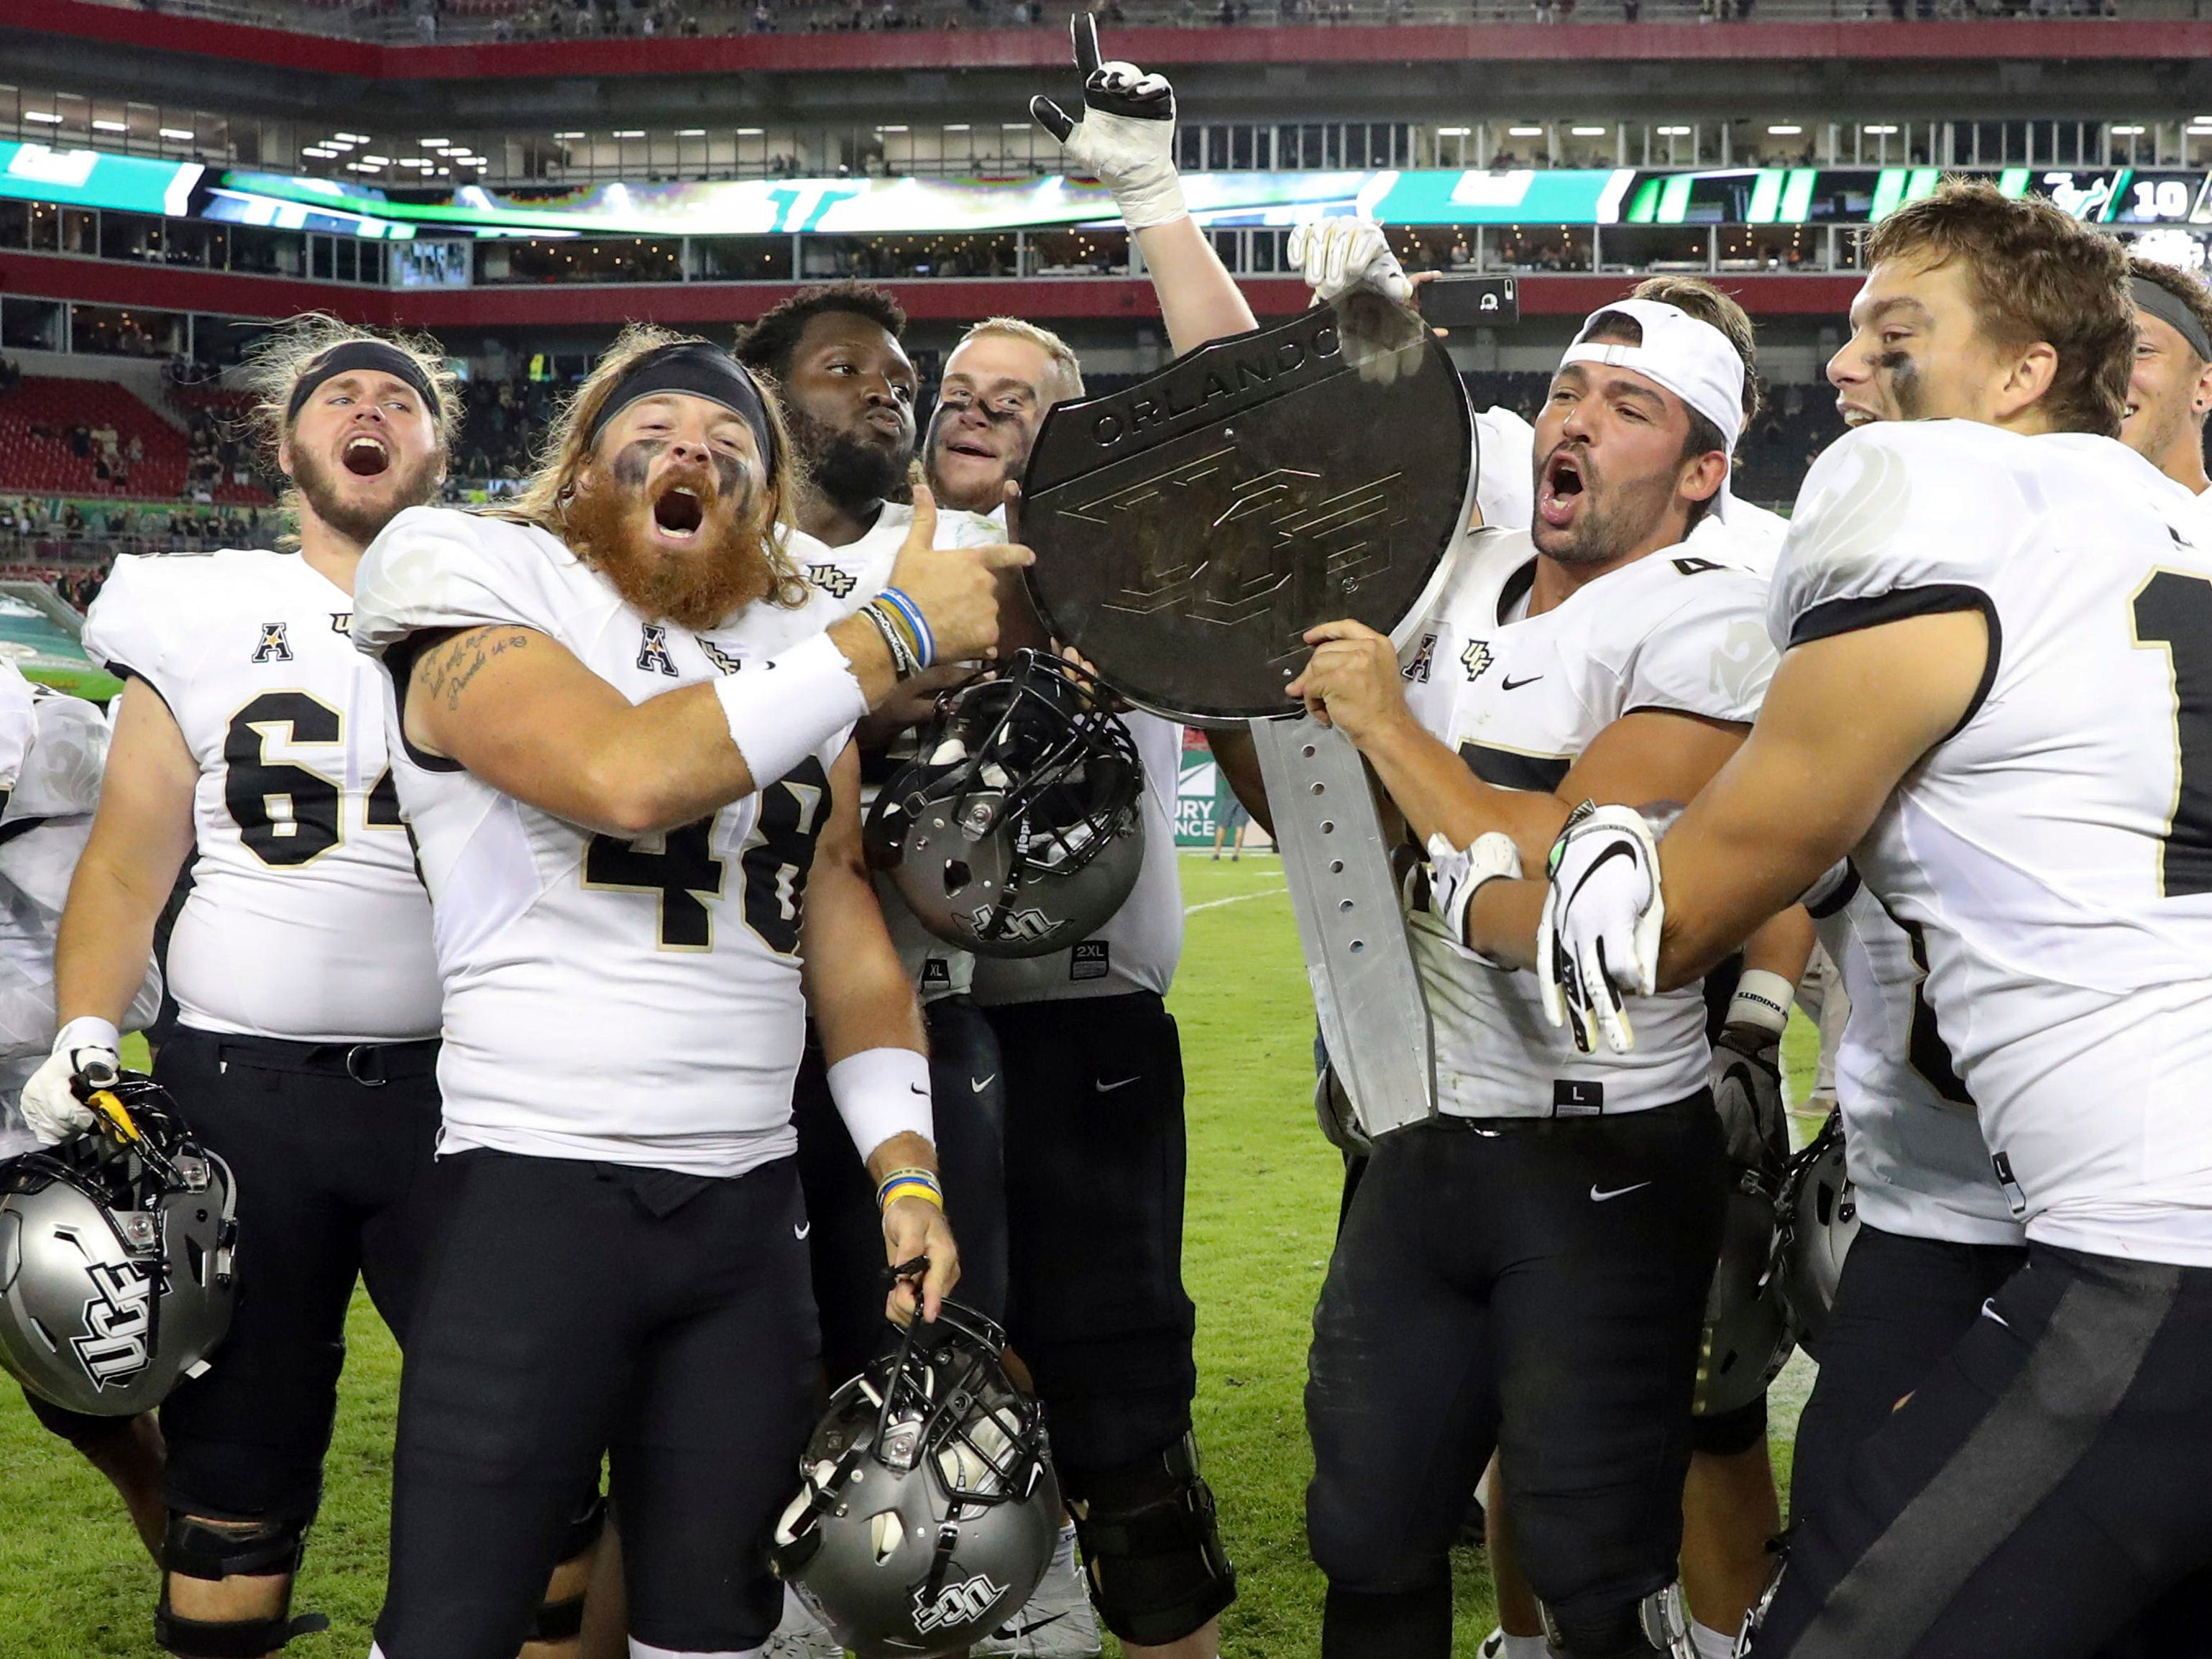 War on I–4 Trophy: Central Florida players celebrate with the War on I-4 trophy after defeating South Florida, 38-10,  in Tampa, Fla. on Nov. 23.